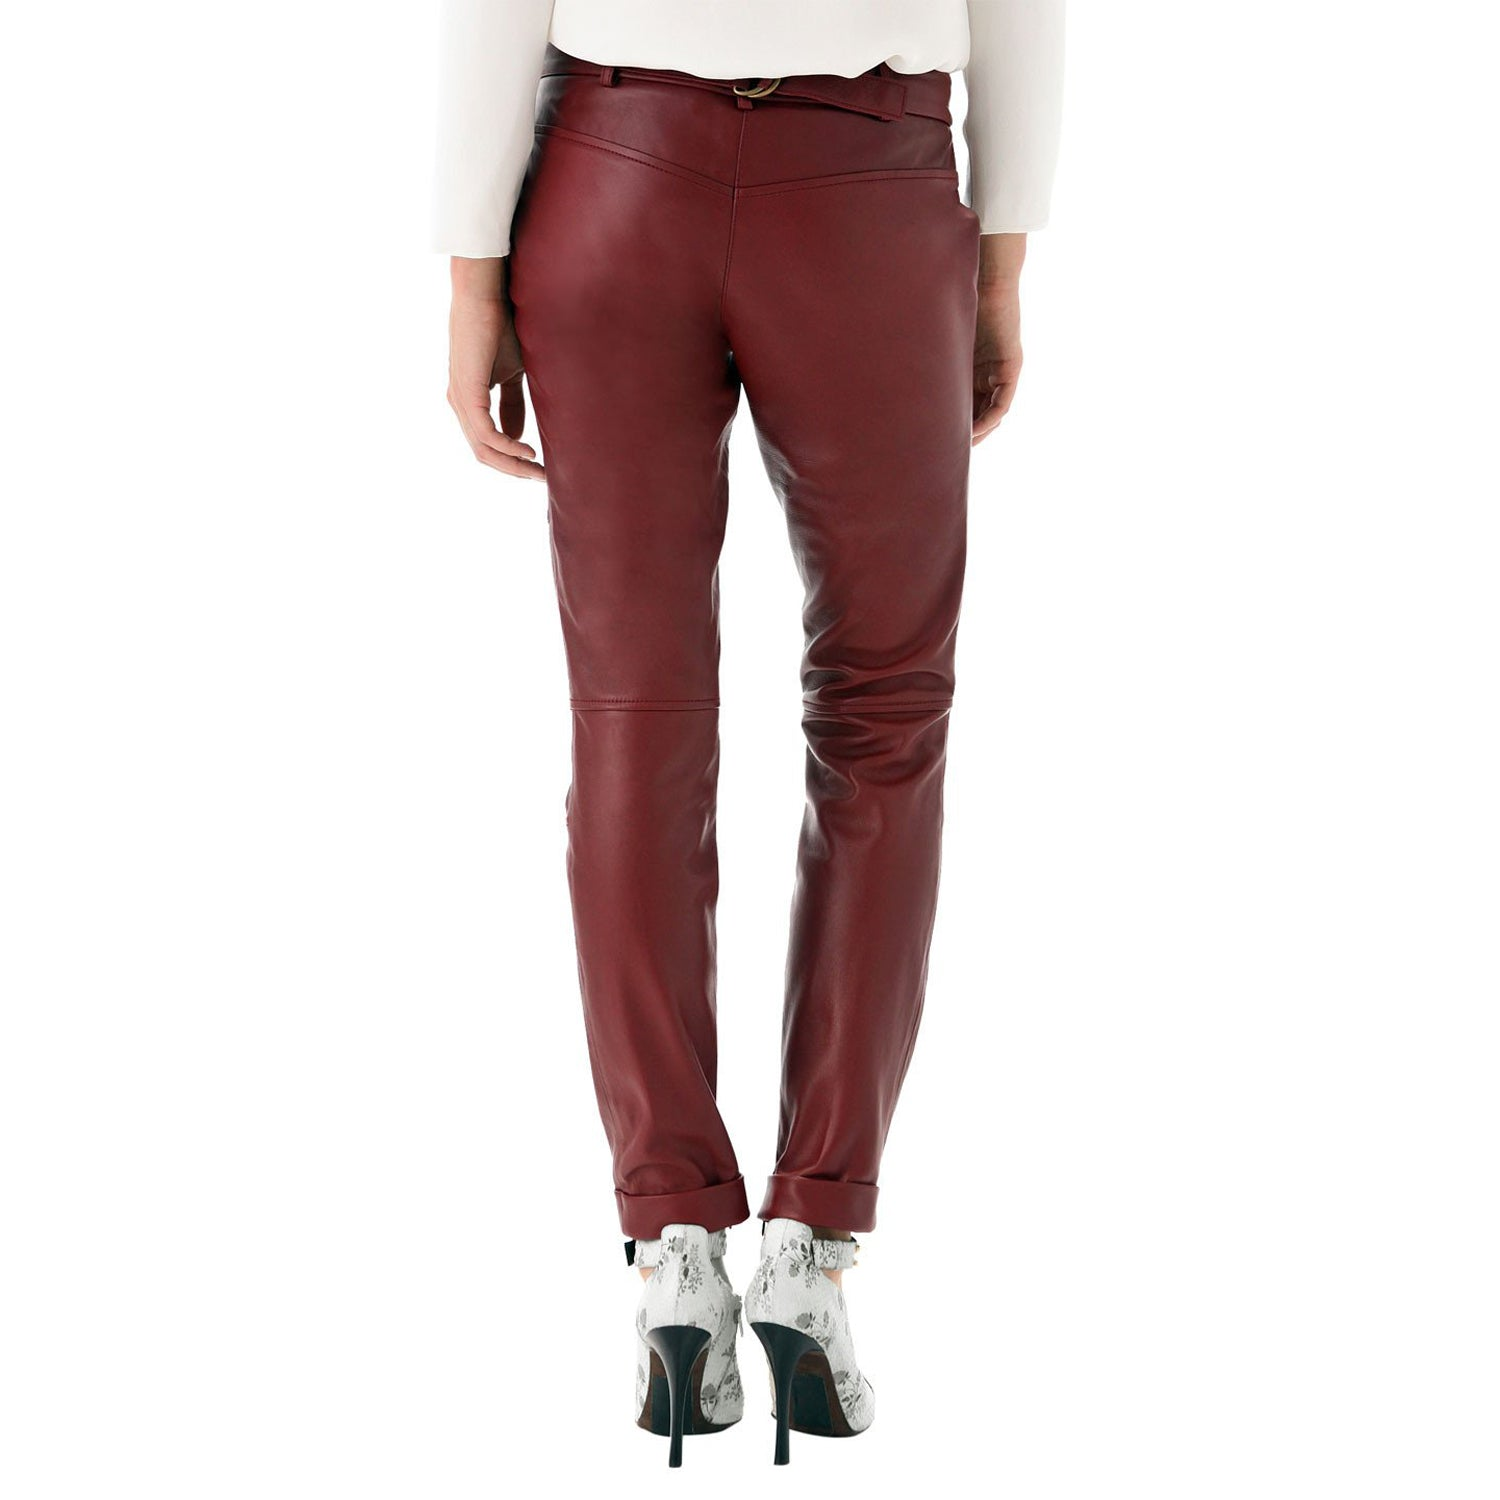 Cherry leather pants with belt (style #15) - Lusso Leather - 2